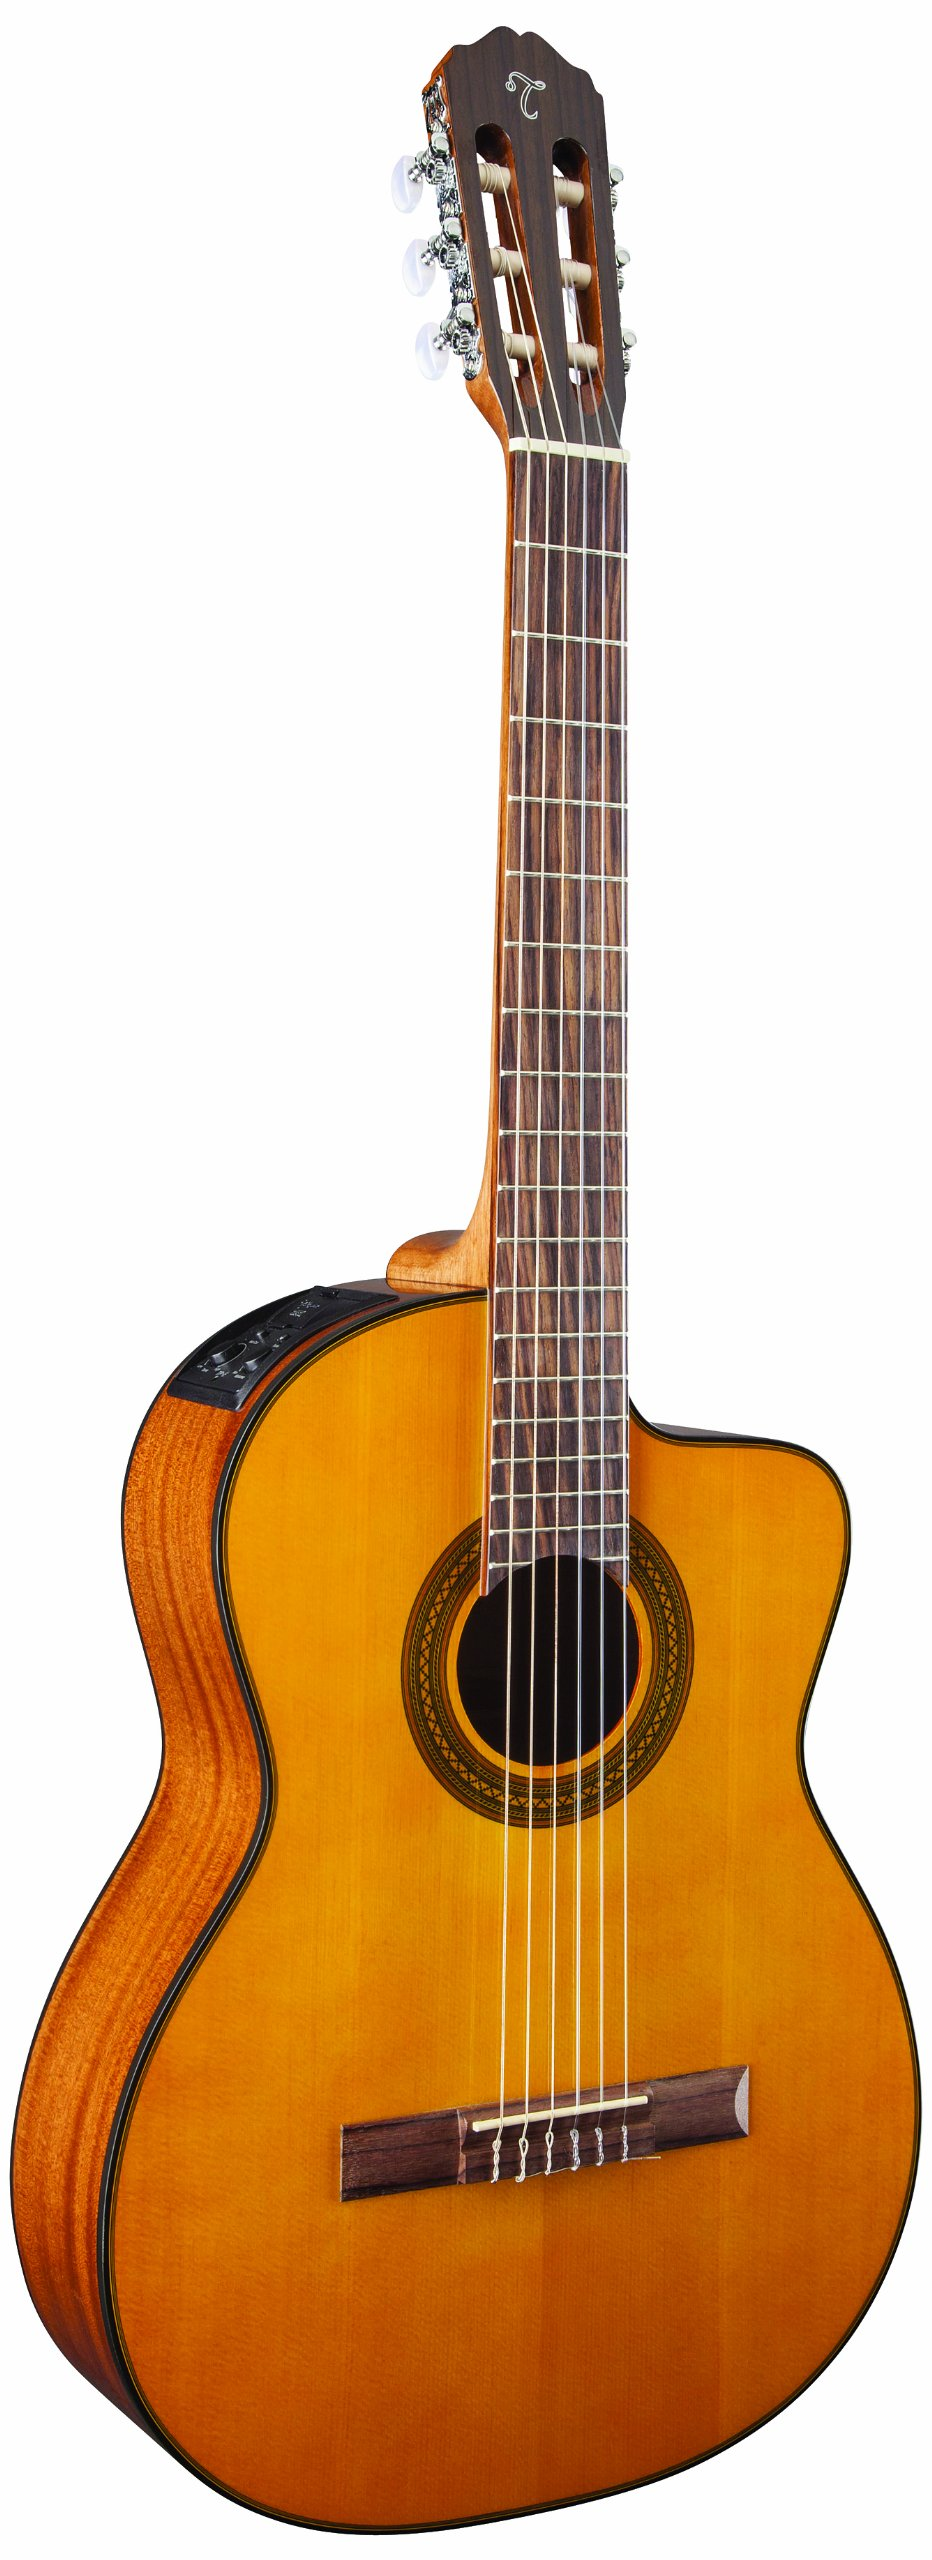 Takamine 6 String Solid-Body Electric Guitar, Right Handed, Natural (GC1CENAT) by Takamine